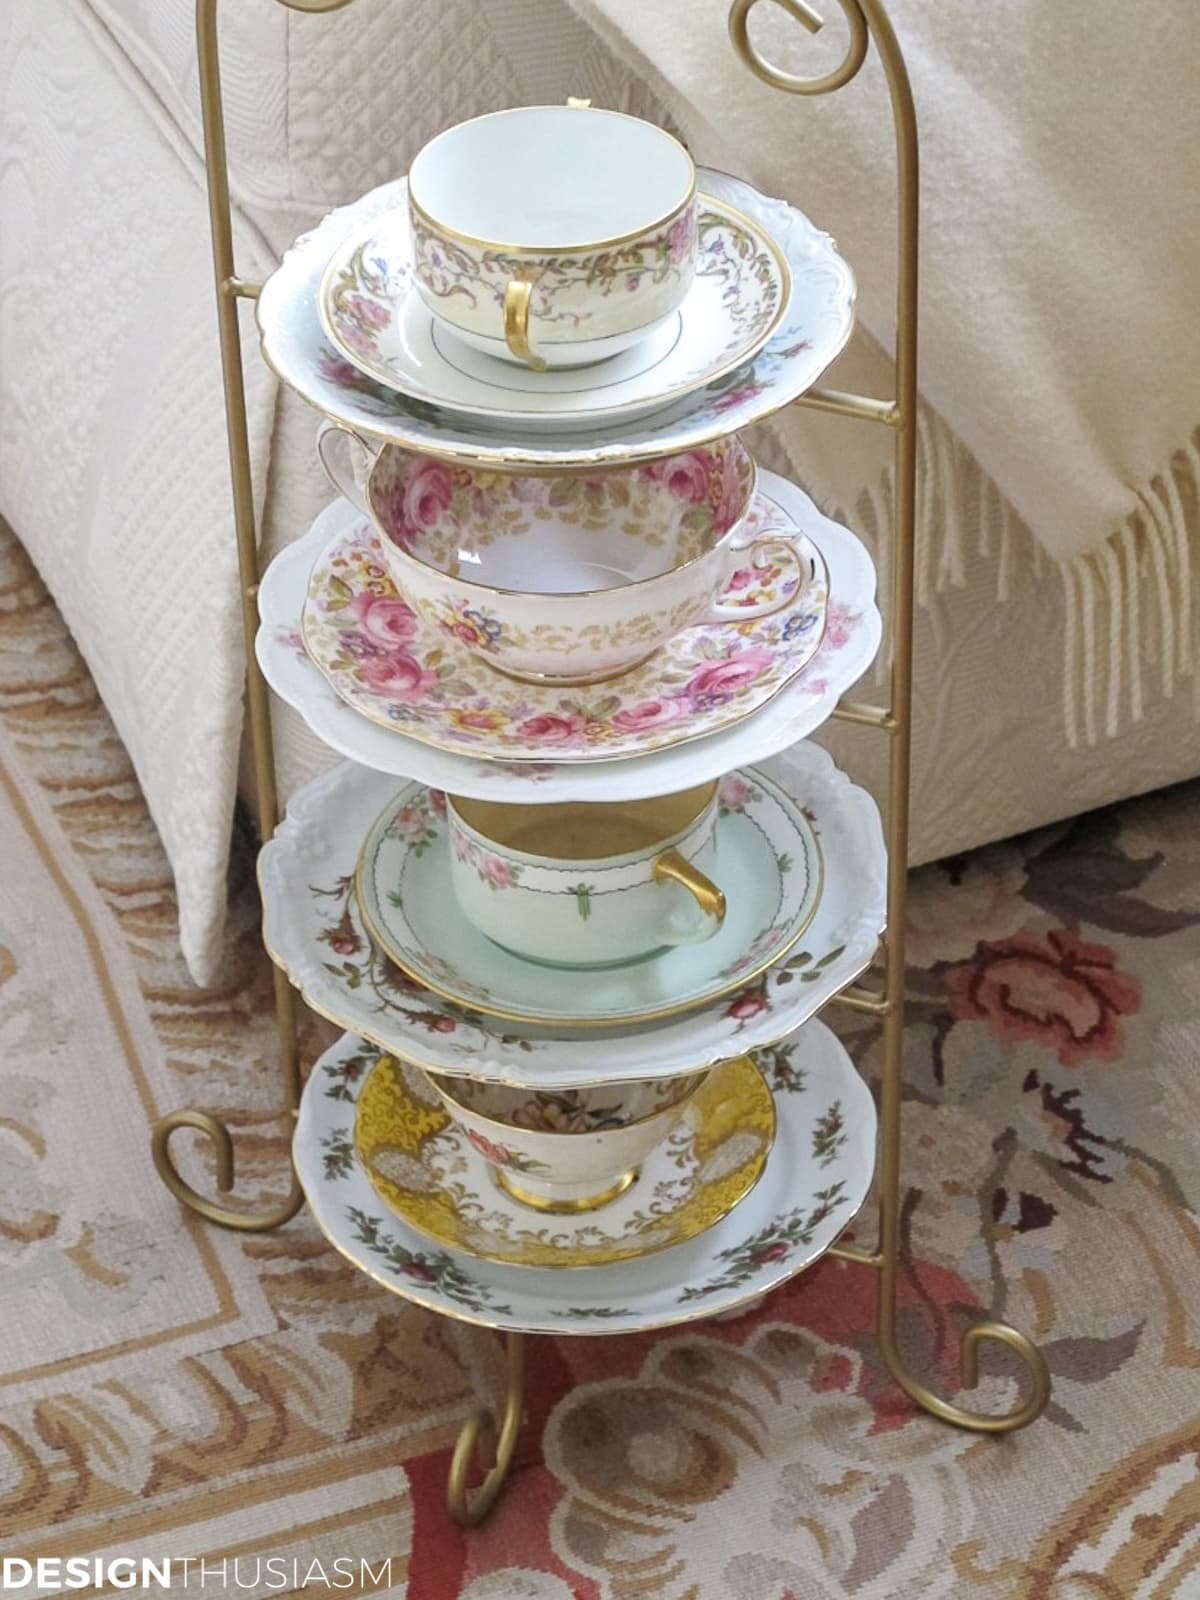 Unusual Ways To Use And Display Teacups In Your Home